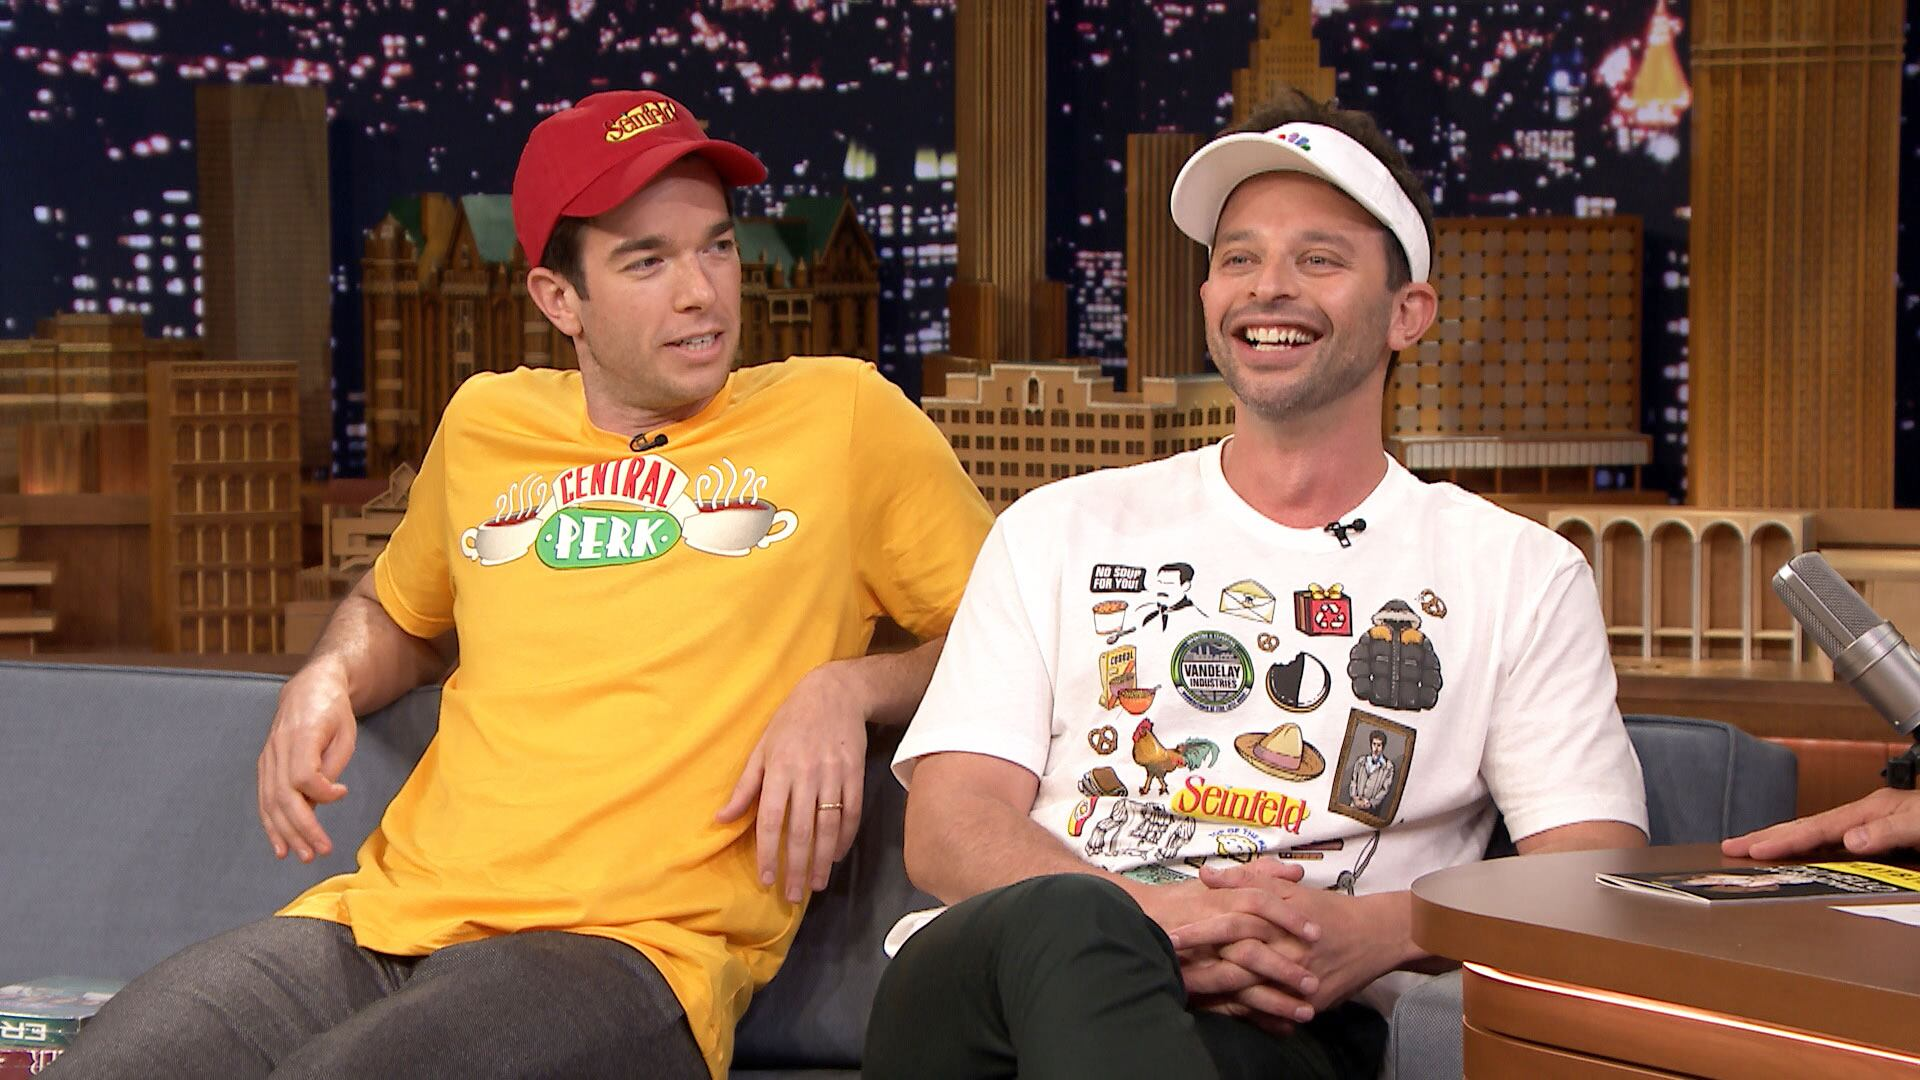 Nick Kroll and John Mulaney Show Off Their NBC Store Swag